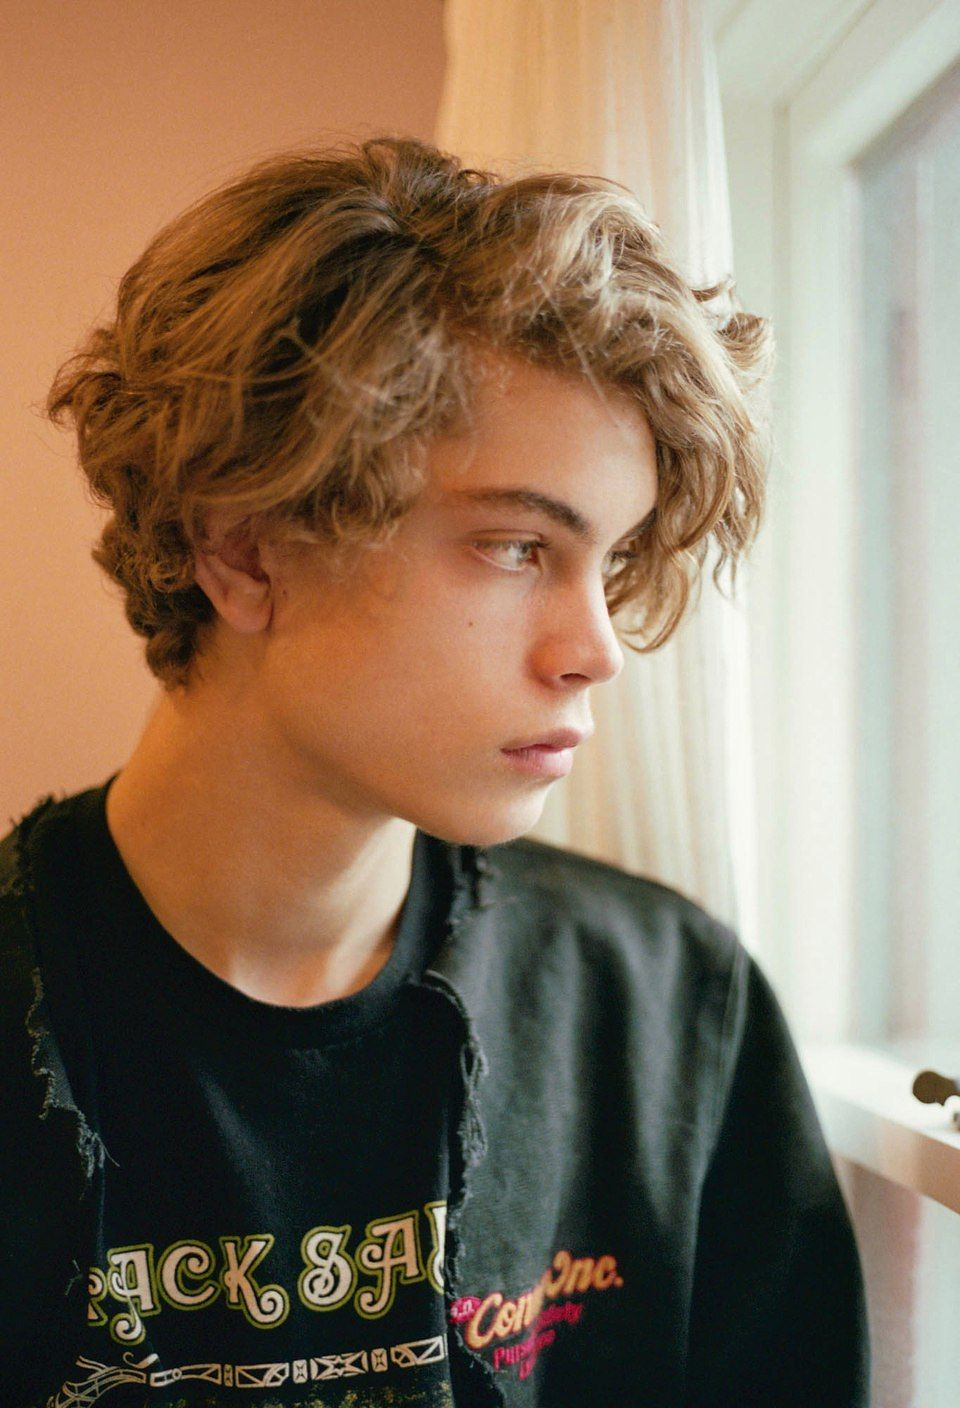 Blonde Boy With Green Eyes Google Search Hairstyles For Teenage Guys Boys With Curly Hair Boy Hairstyles